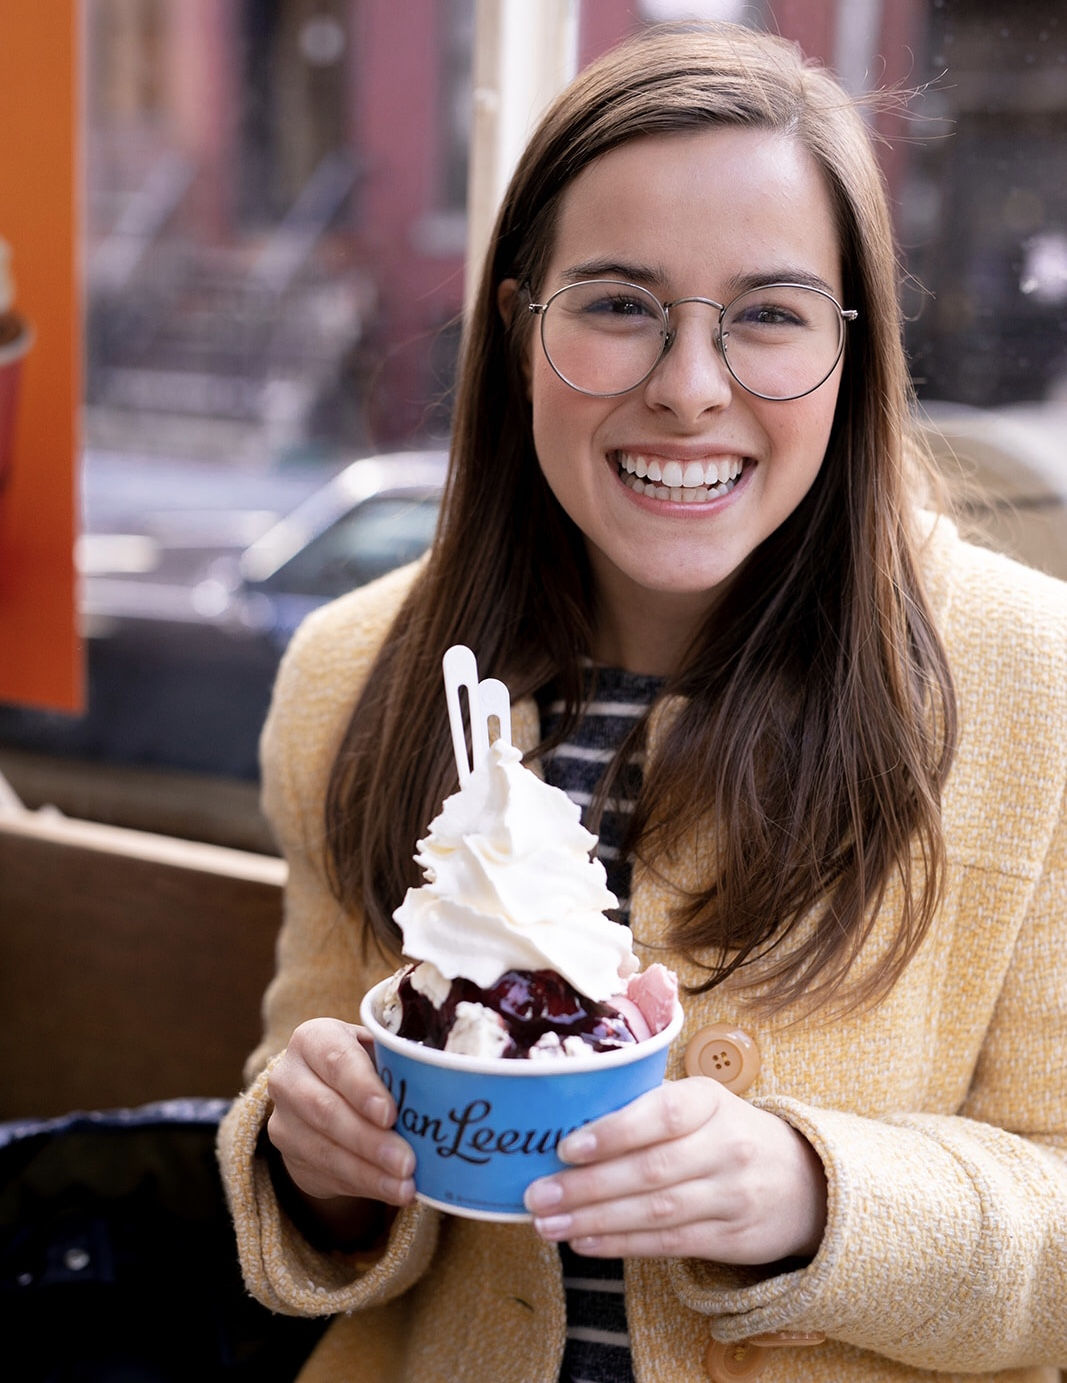 Image of Sara Kreski and Van Leeuwen's Ice Cream, taken by Jenni Johnson Photography, 2019.